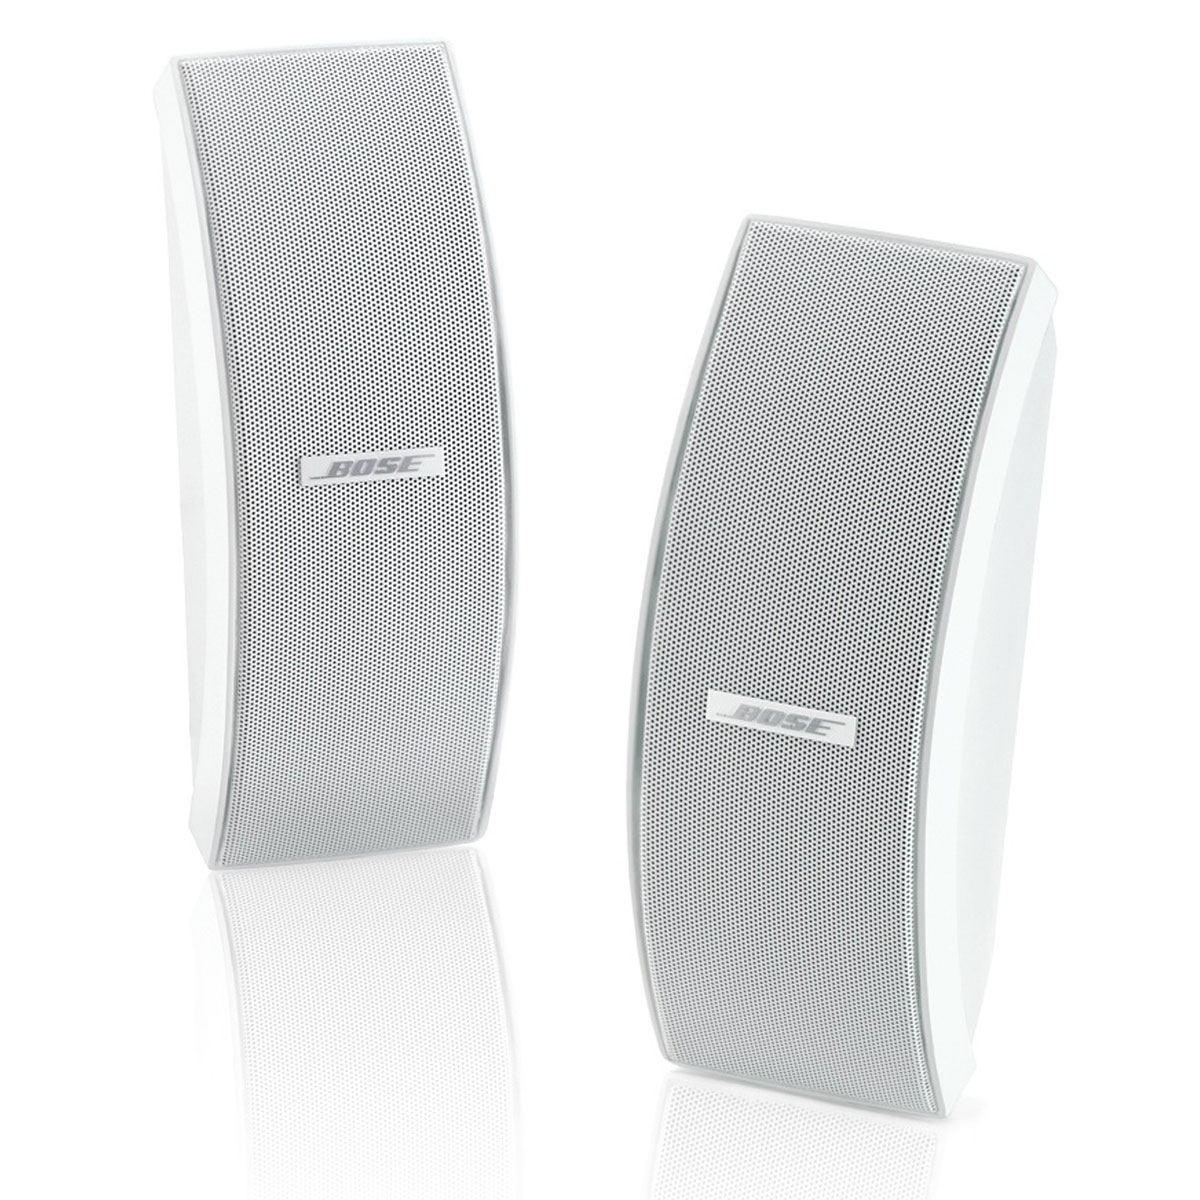 bose 151 blanc 151wh achat vente enceintes hifi sur. Black Bedroom Furniture Sets. Home Design Ideas